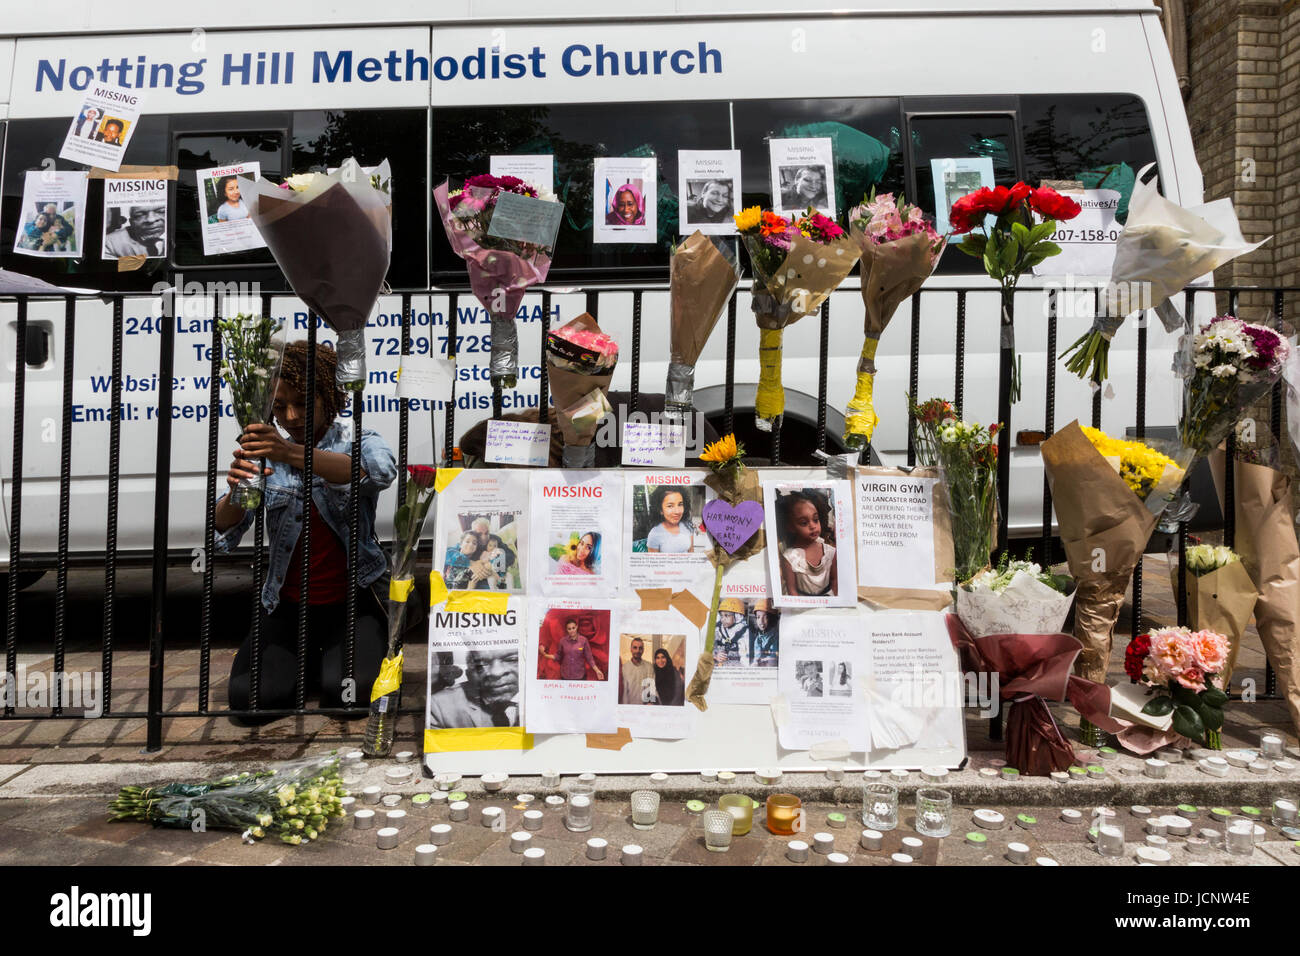 London, UK. 16th June, 2017. Volunteers at the Notting Hill Methodist Church. The Notting Hill community mourns - Stock Image